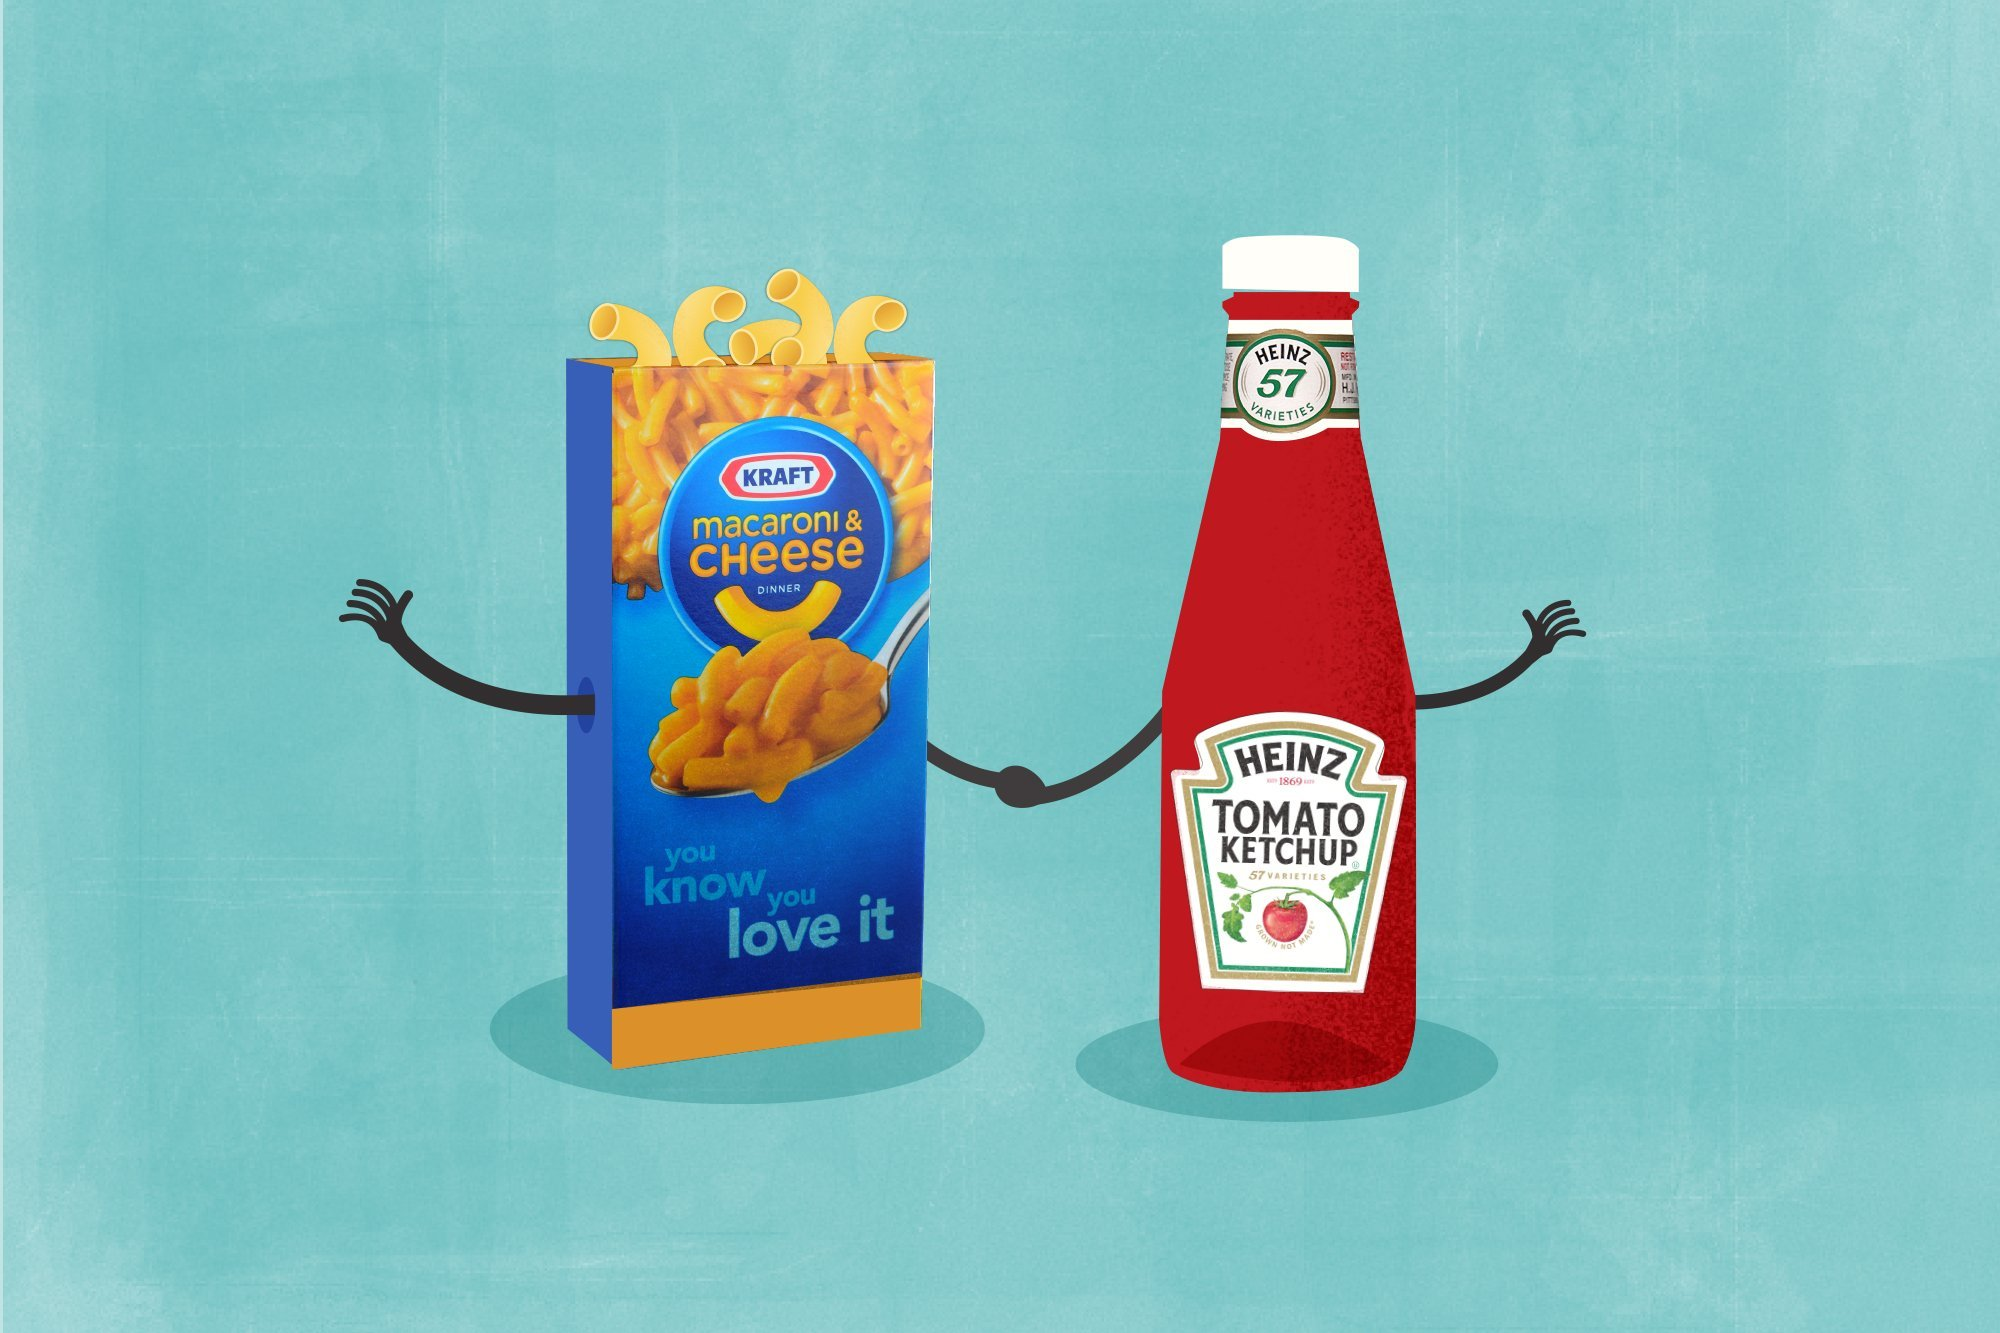 Kraft and Heinz merger to create food giant